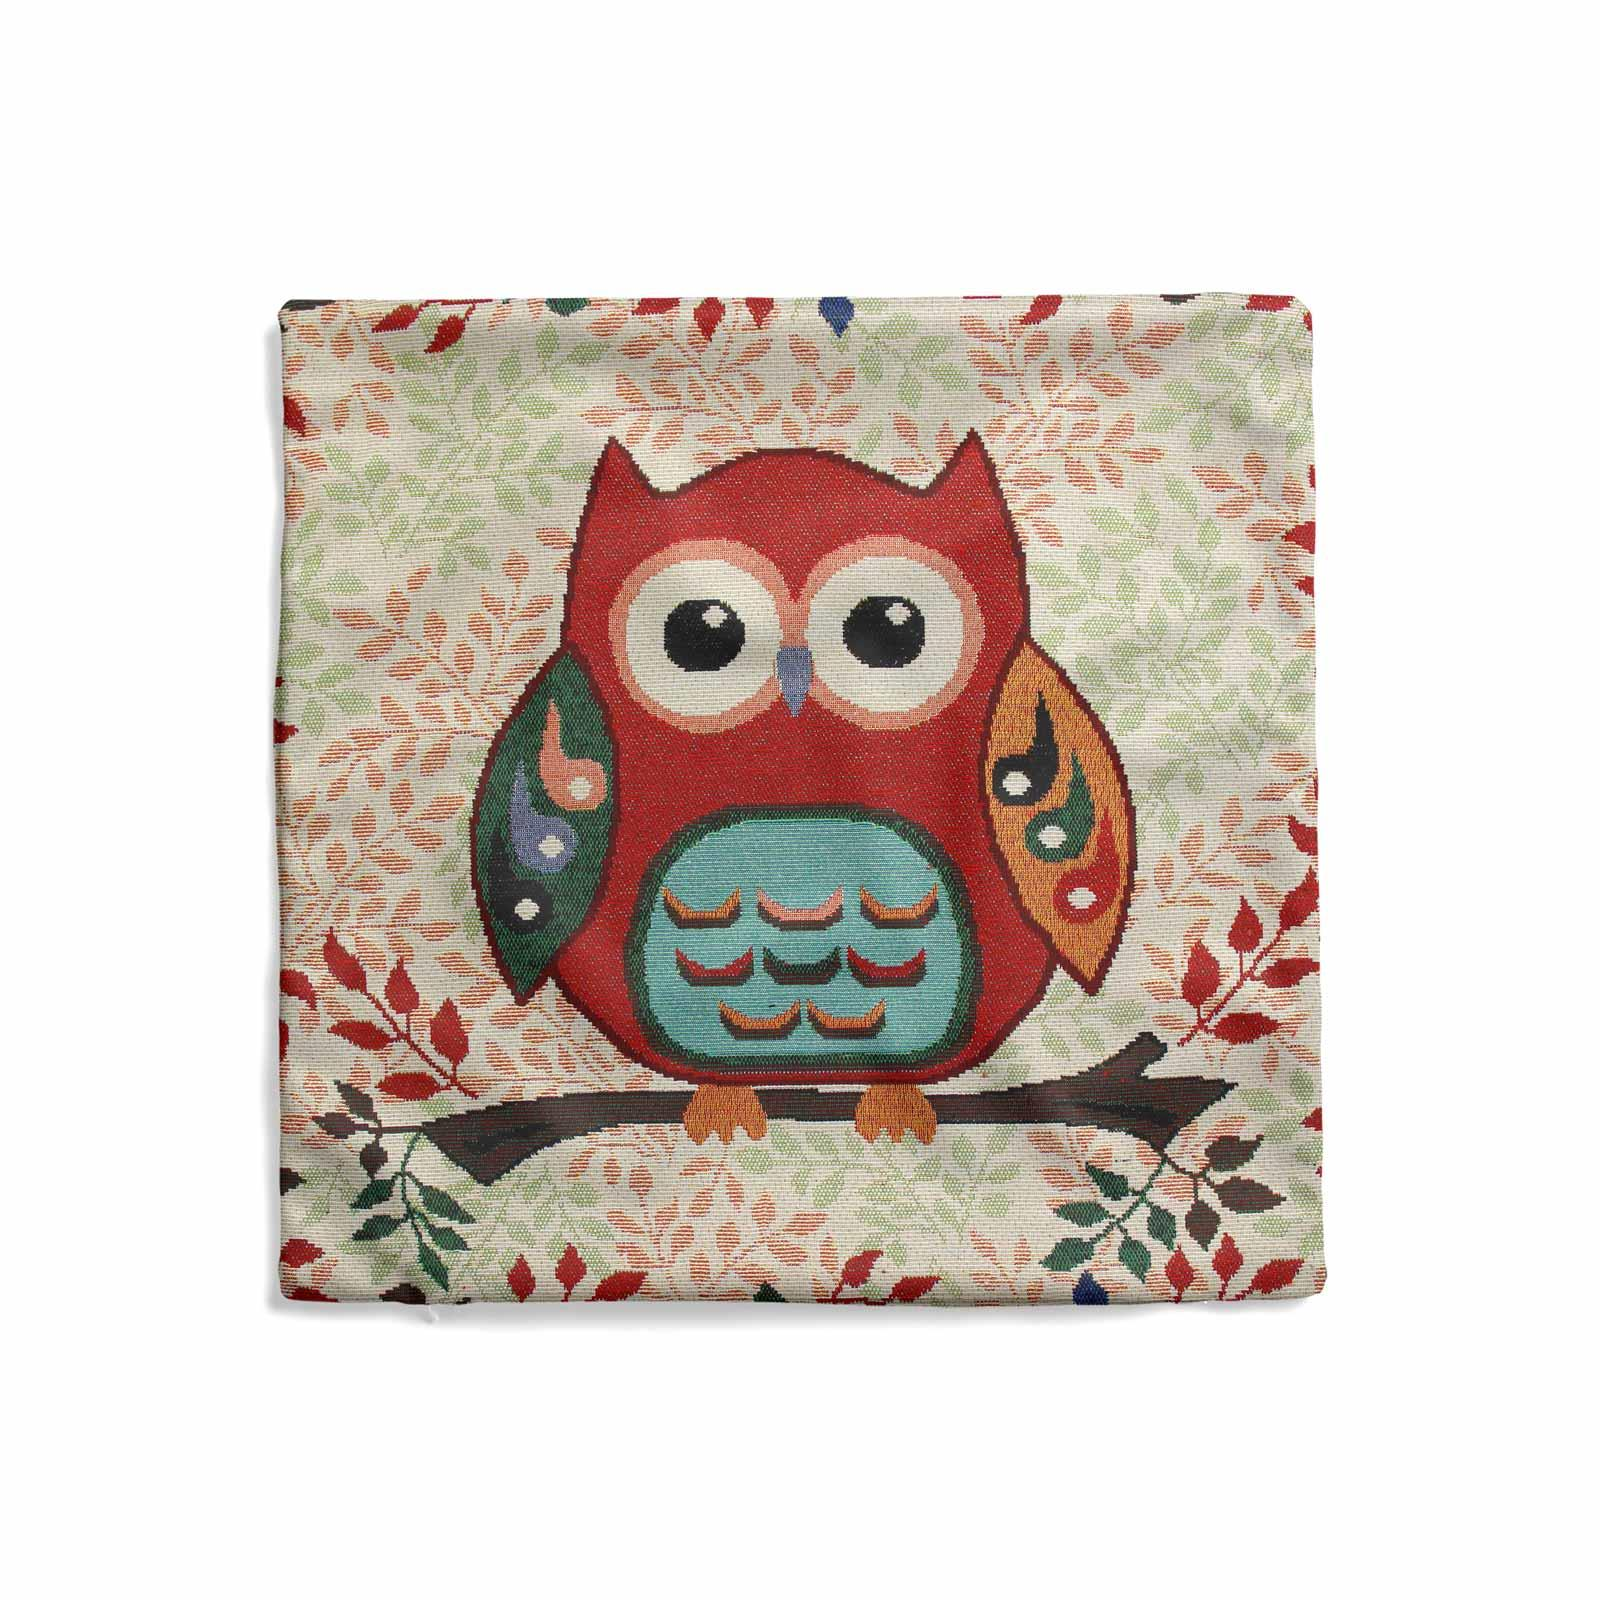 Tapestry-Cushion-Covers-Vintage-Pillow-Cover-Collection-18-034-45cm-Filled-Cushions thumbnail 210